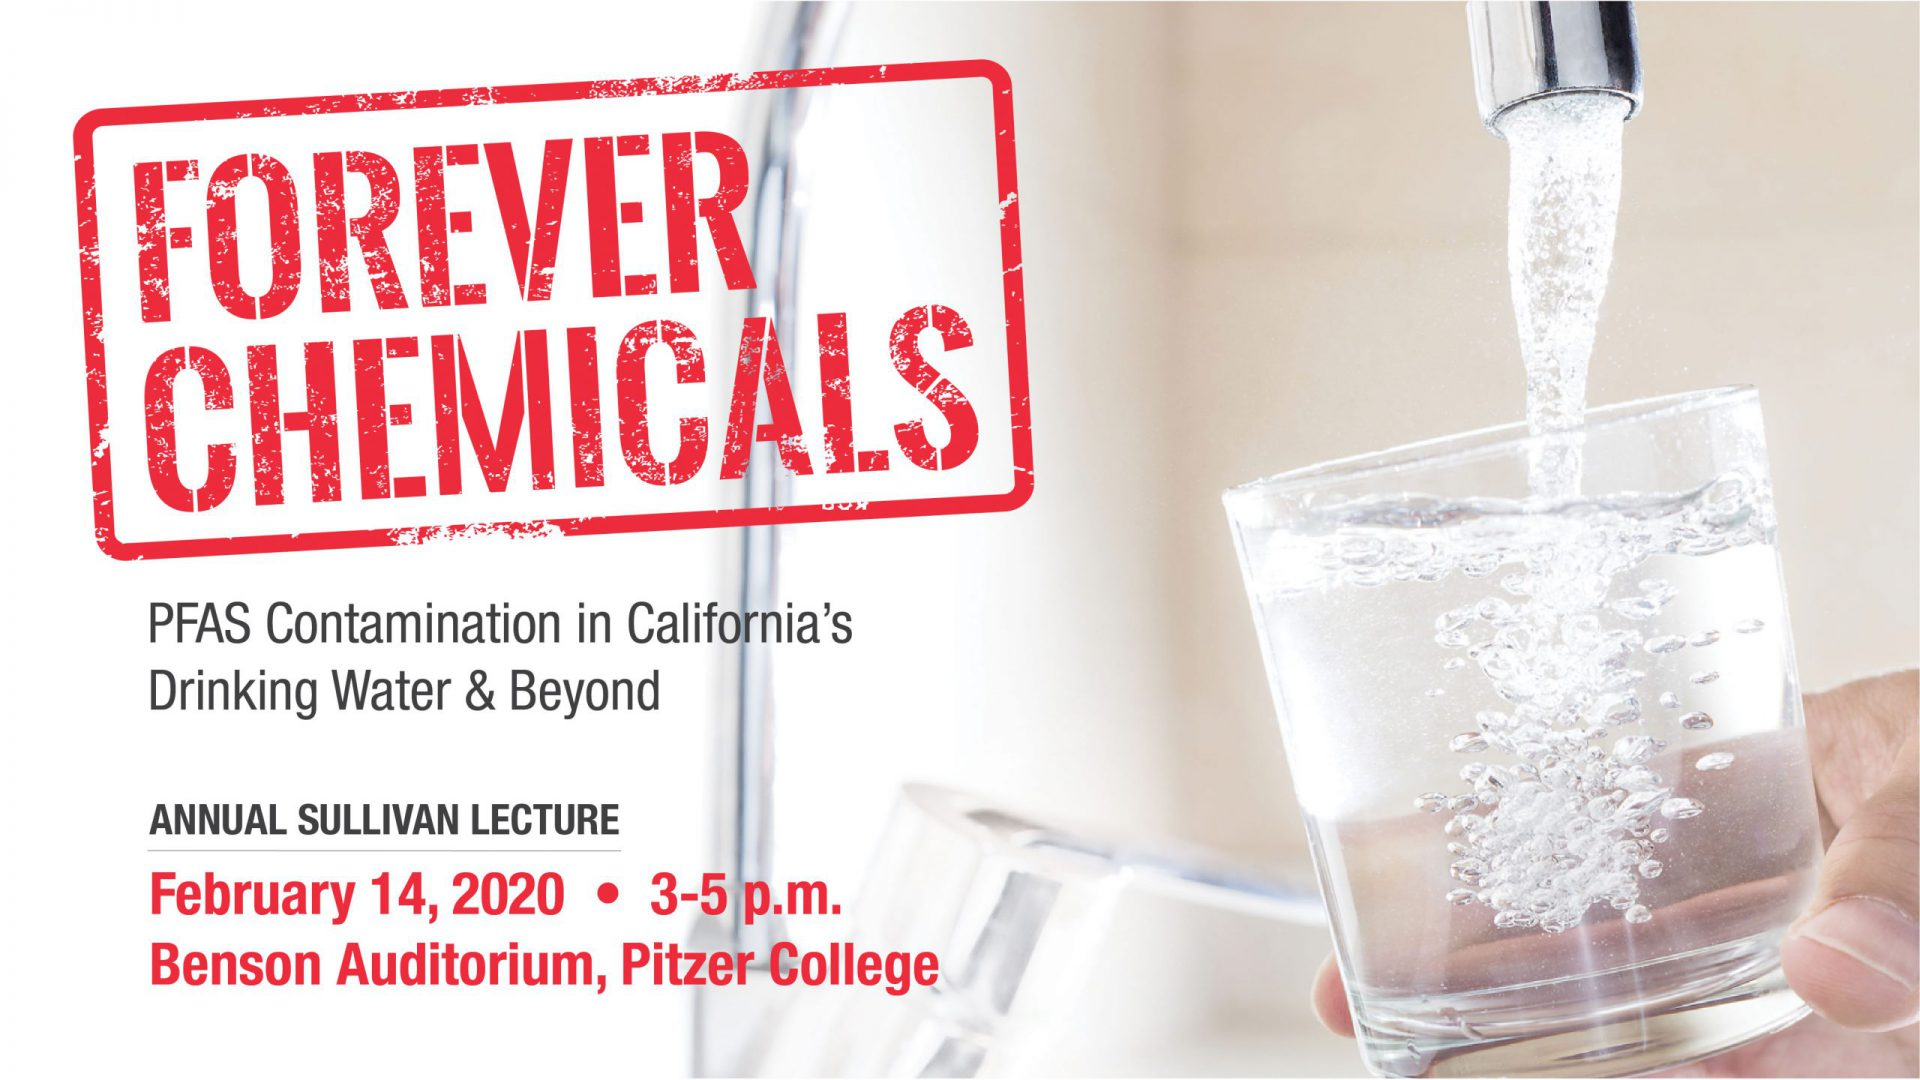 Forever Chemicals: Sullivan Lecture